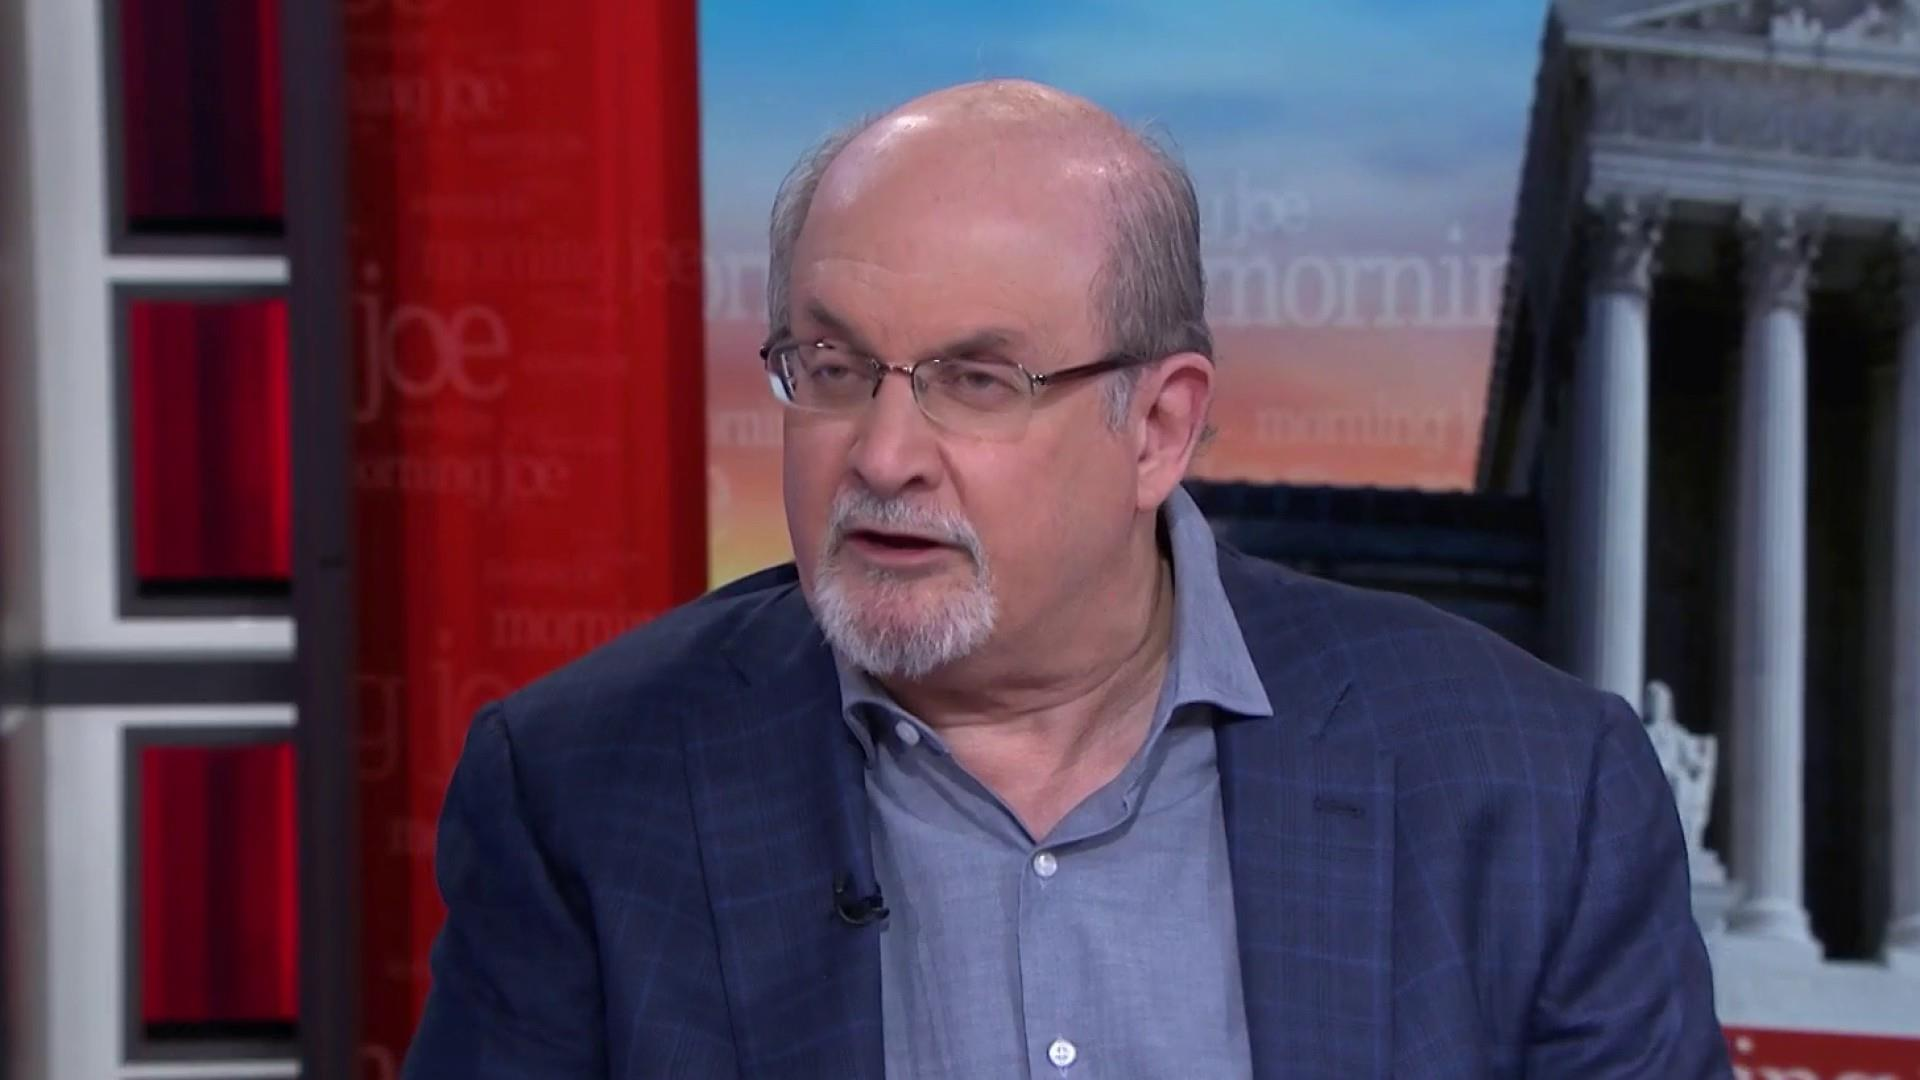 Rushdie on how his novel reflects the 'insane' current moment